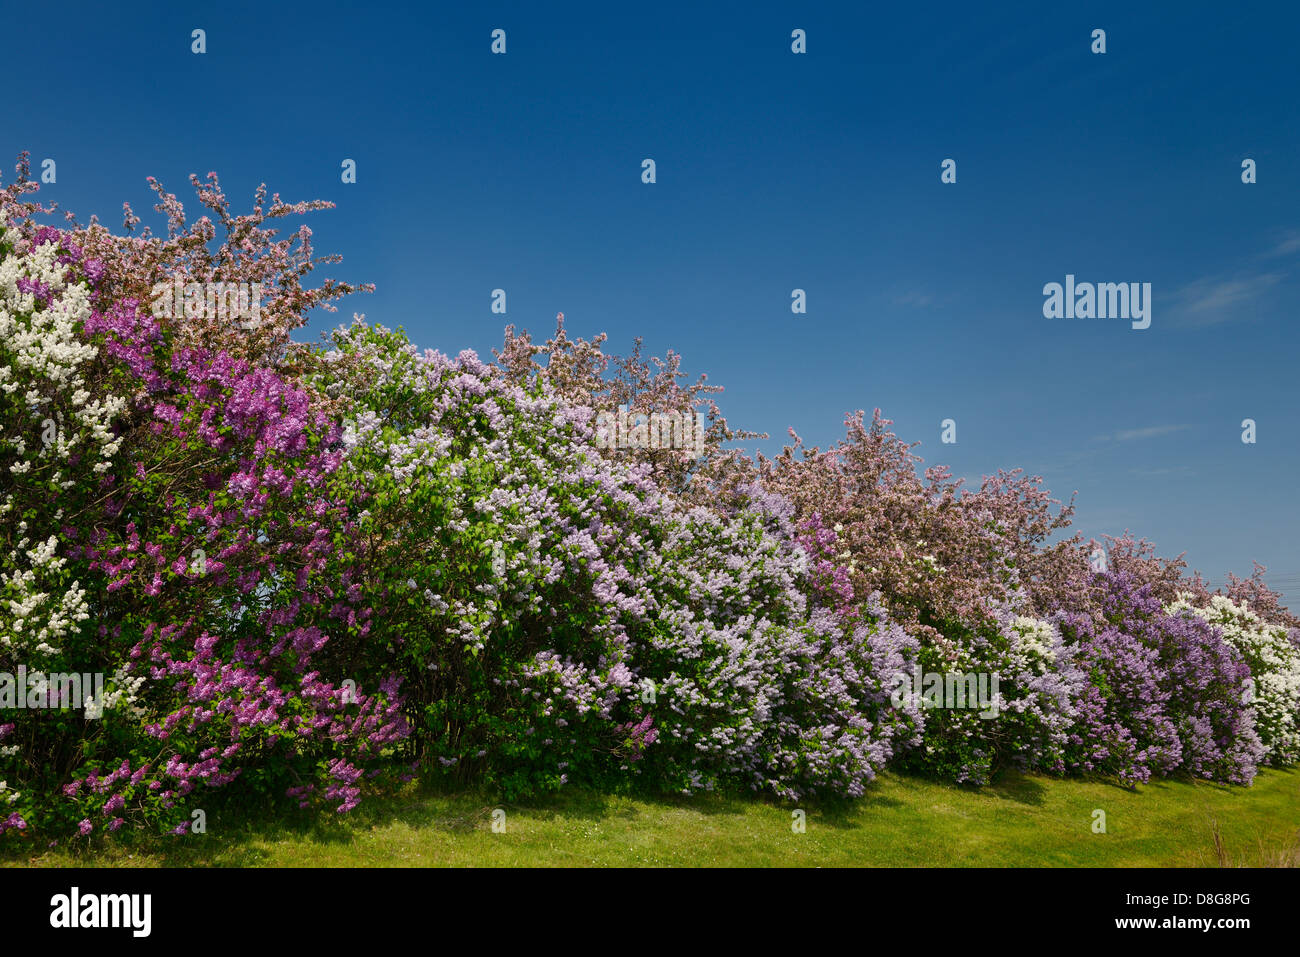 Row Of Common Lilac Bushes Flowering Beside Pink Crabapple